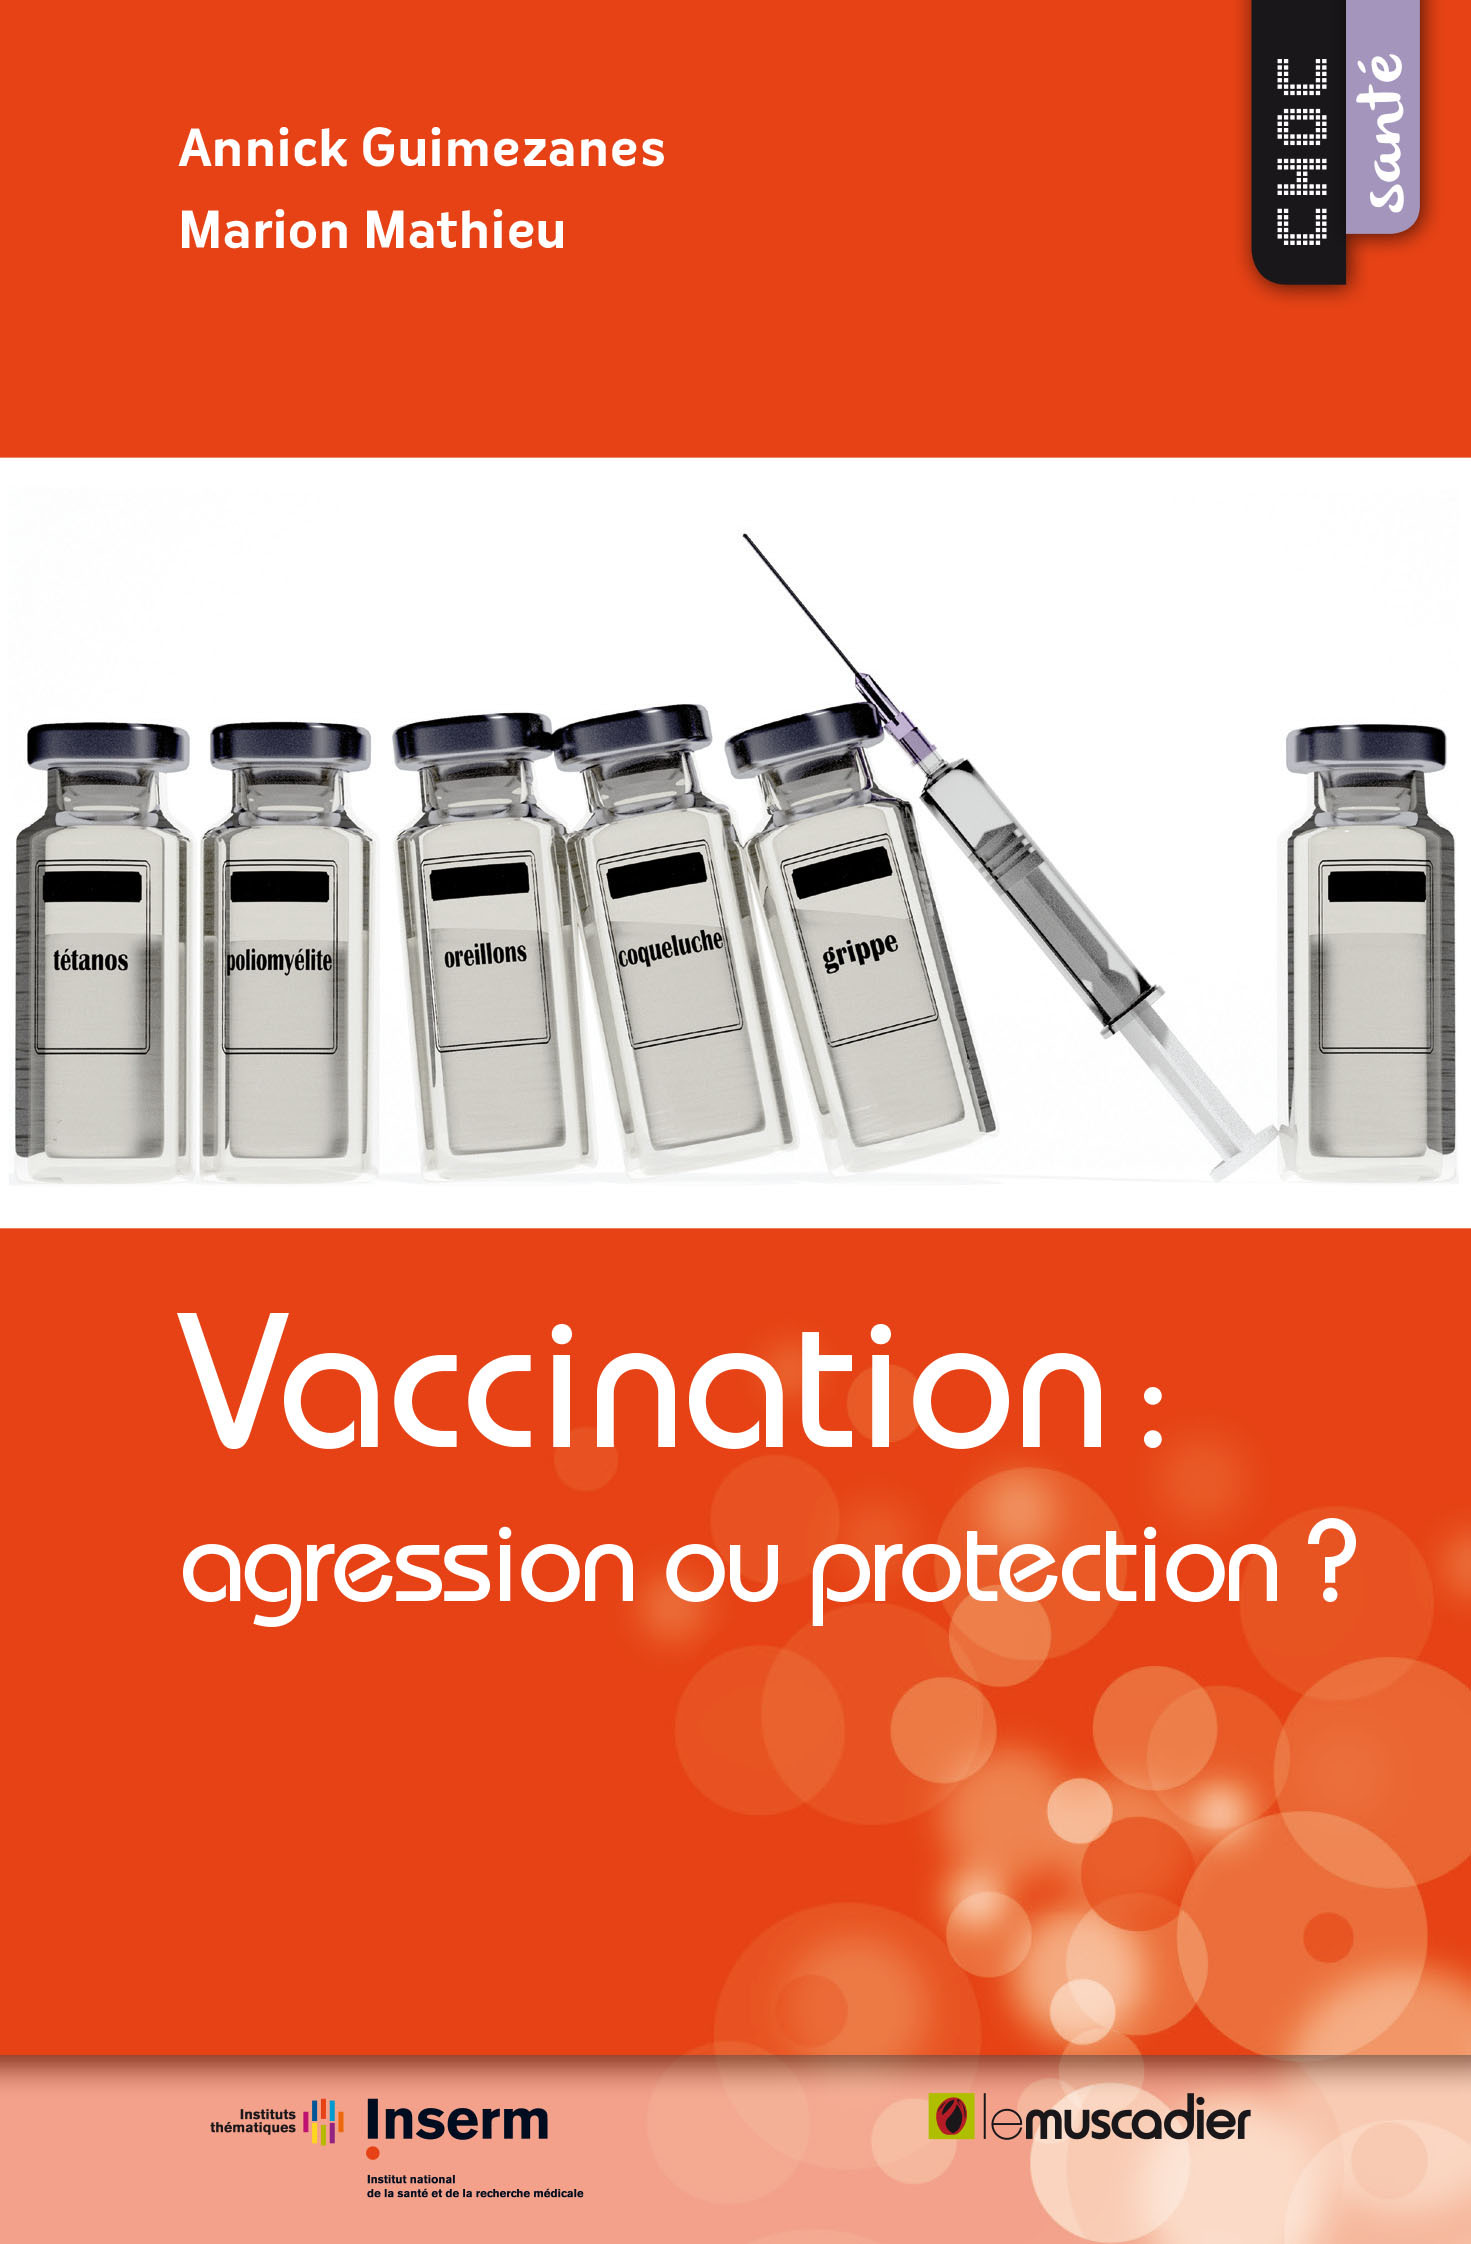 VACCINATION : AGRESSION OU PROTECTION?